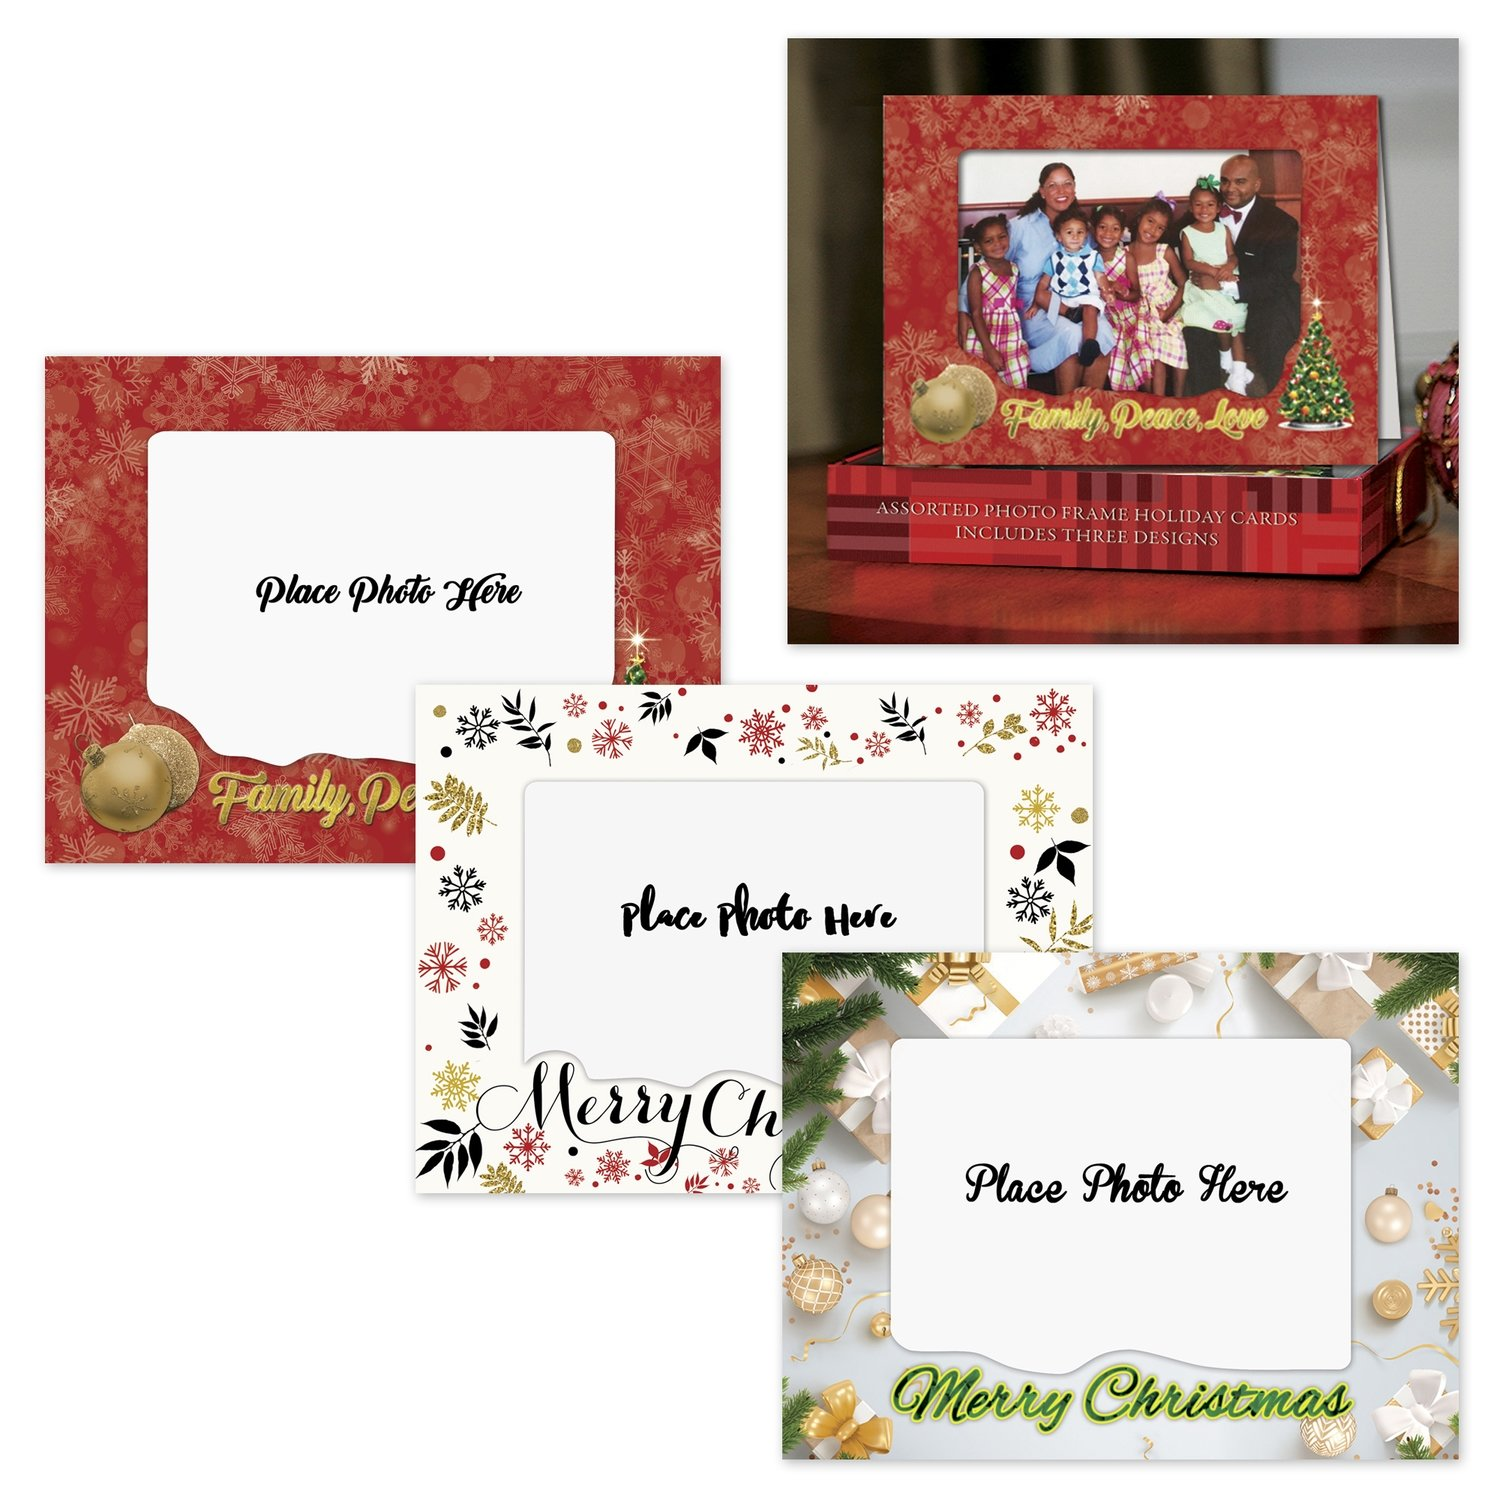 ASSORTED PHOTO FRAME HOLIDAY CARDS